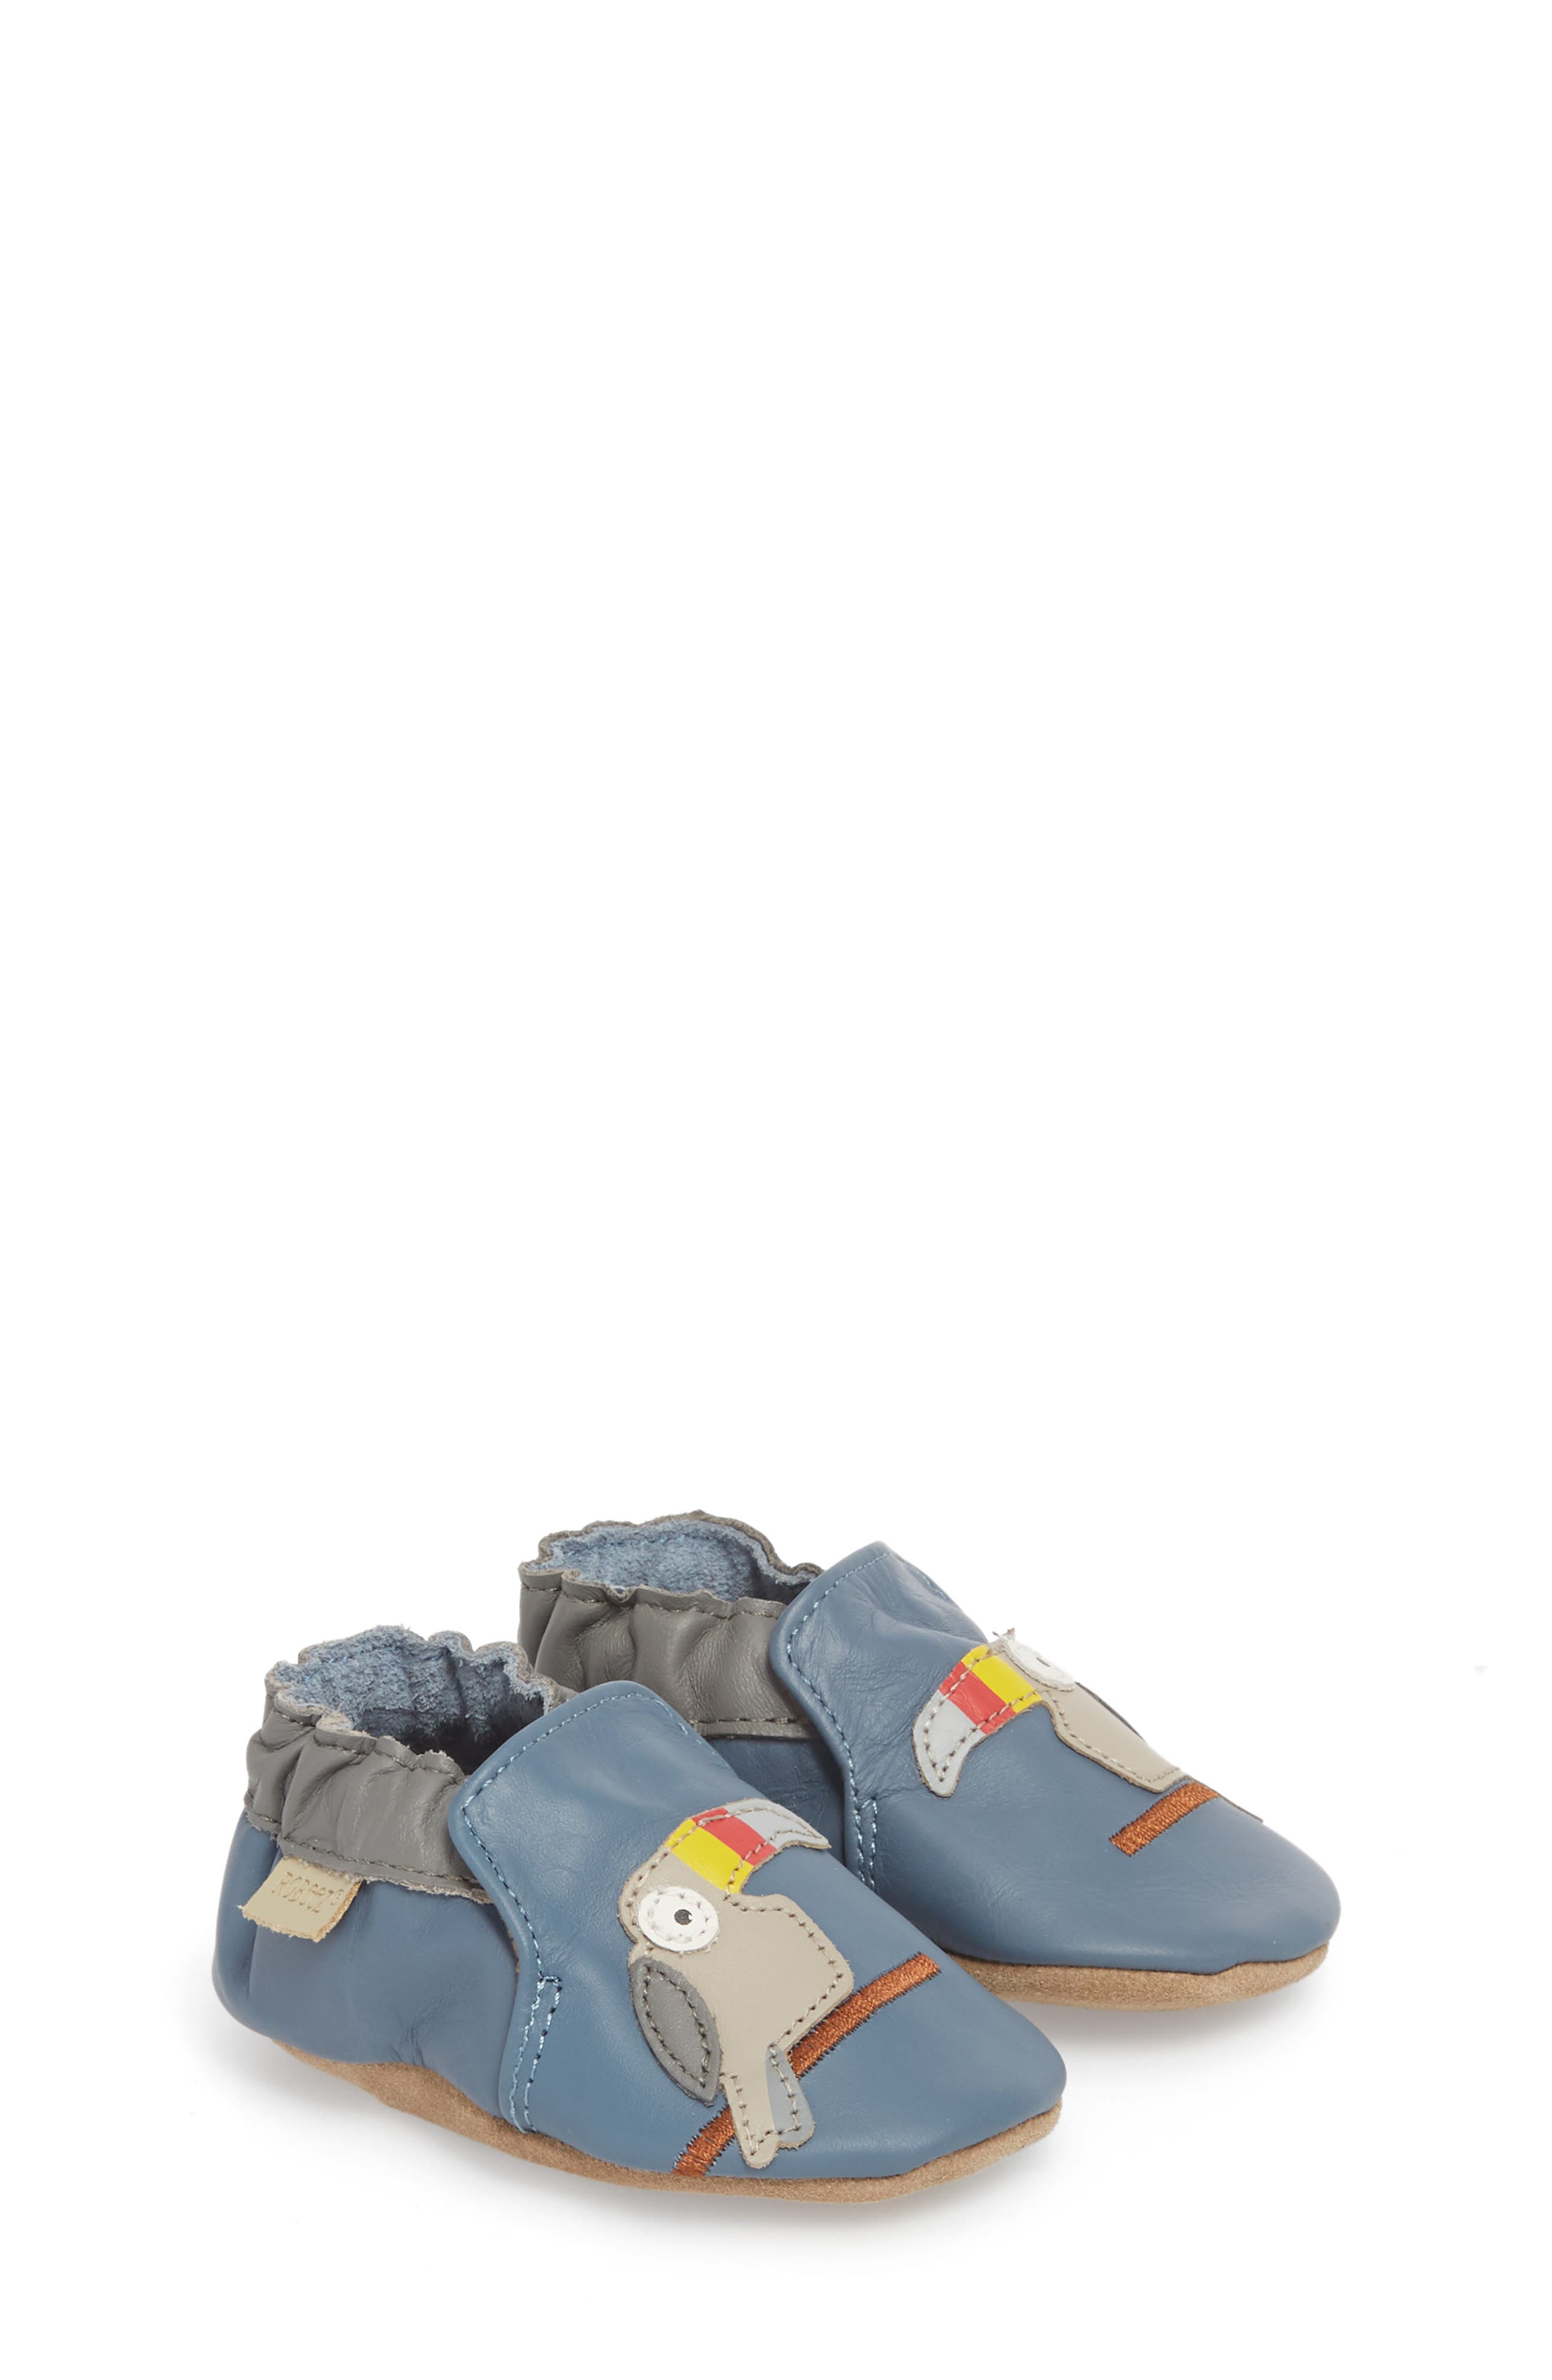 ROBEEZ<SUP>®</SUP> Toucan Tom Moccasin Crib Shoe, Main, color, 450